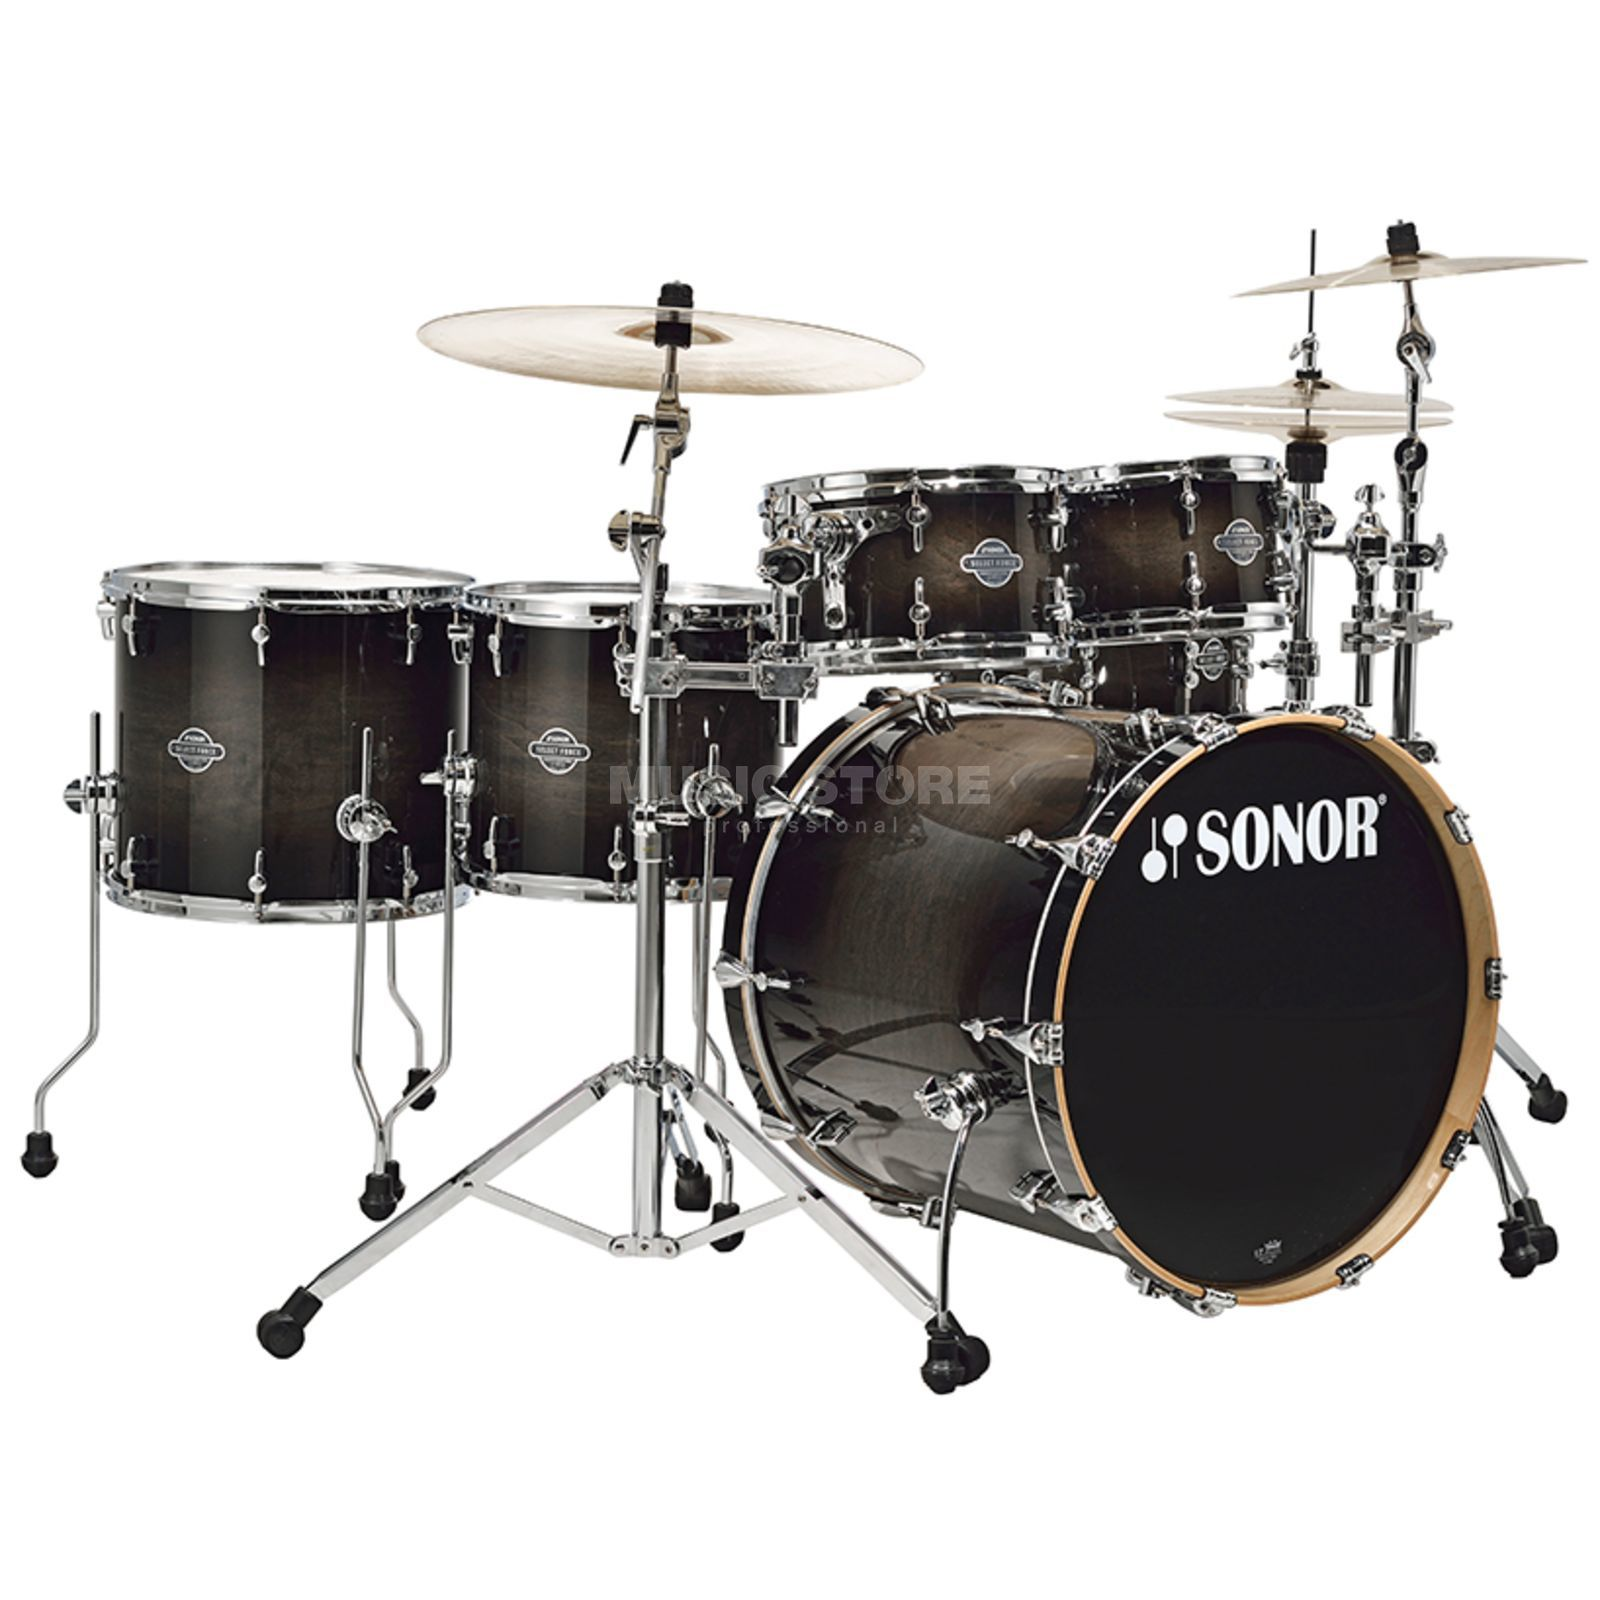 Sonor Select Force Studio, Transparent Black Burst #64 Produktbild